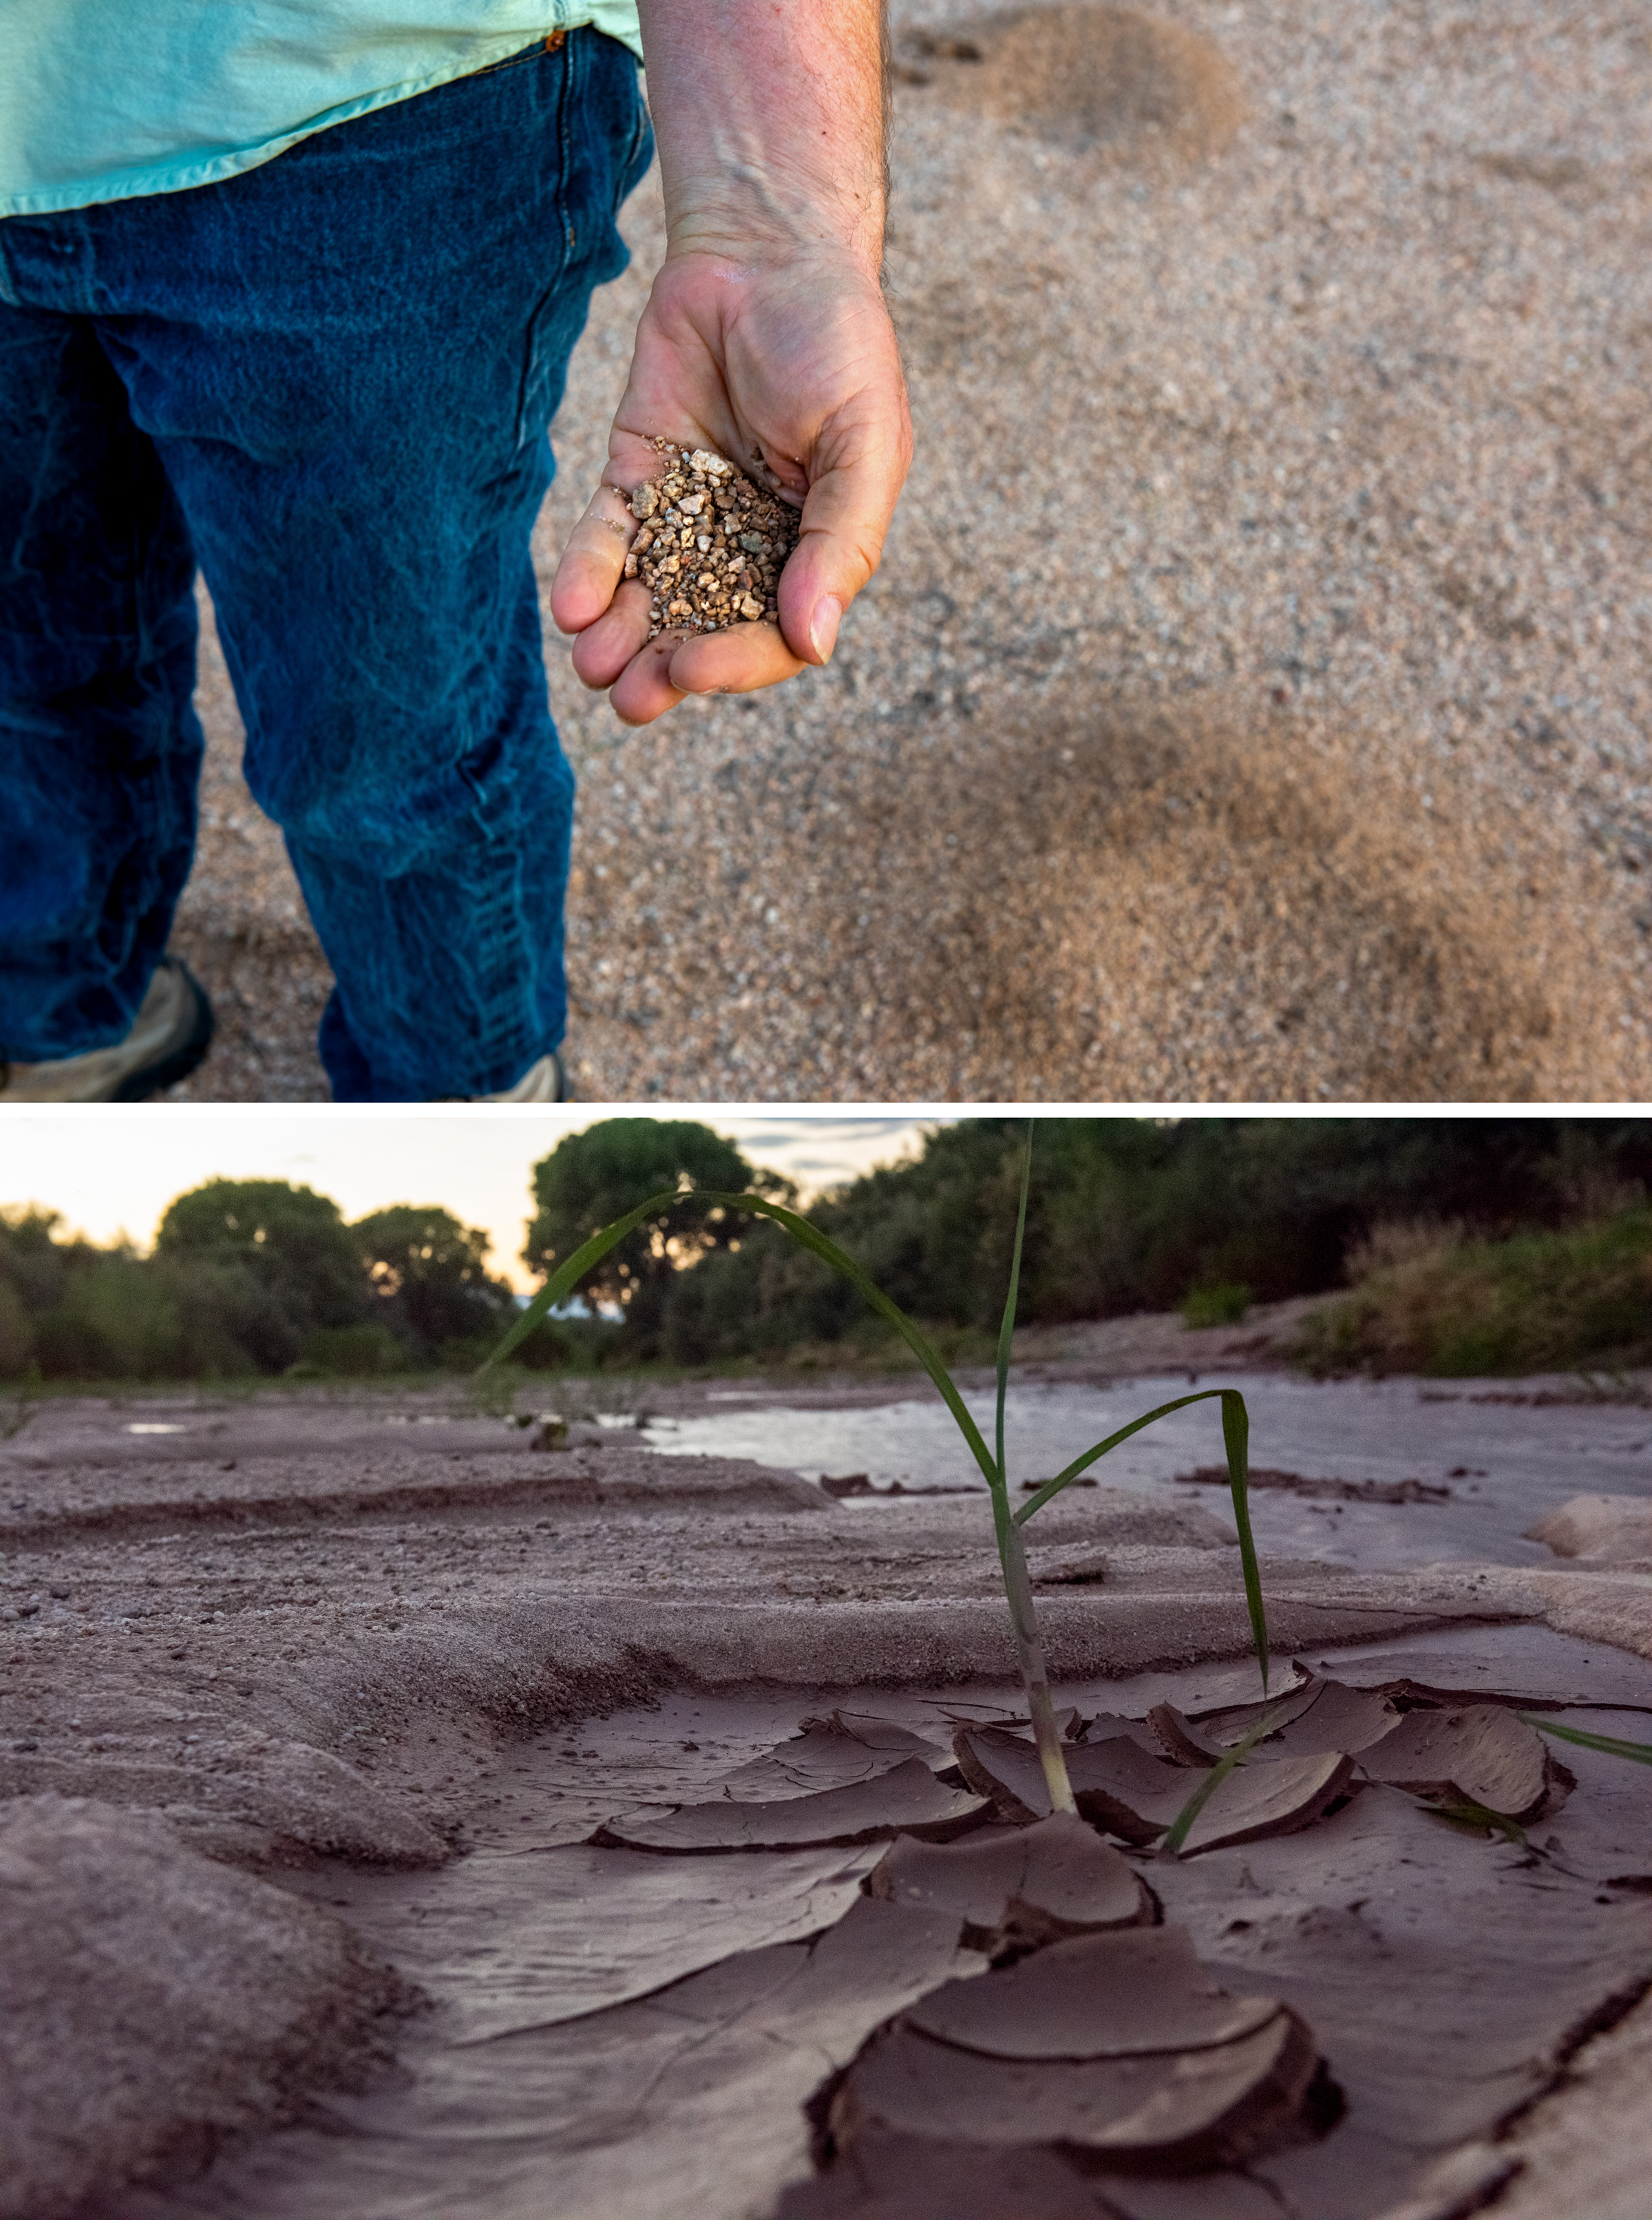 Hydrologist Mark Murphy, top, examines soil at the Villages at Vigneto site. The river bed of the San Pedro, bottom. Photos: Ash Ponders